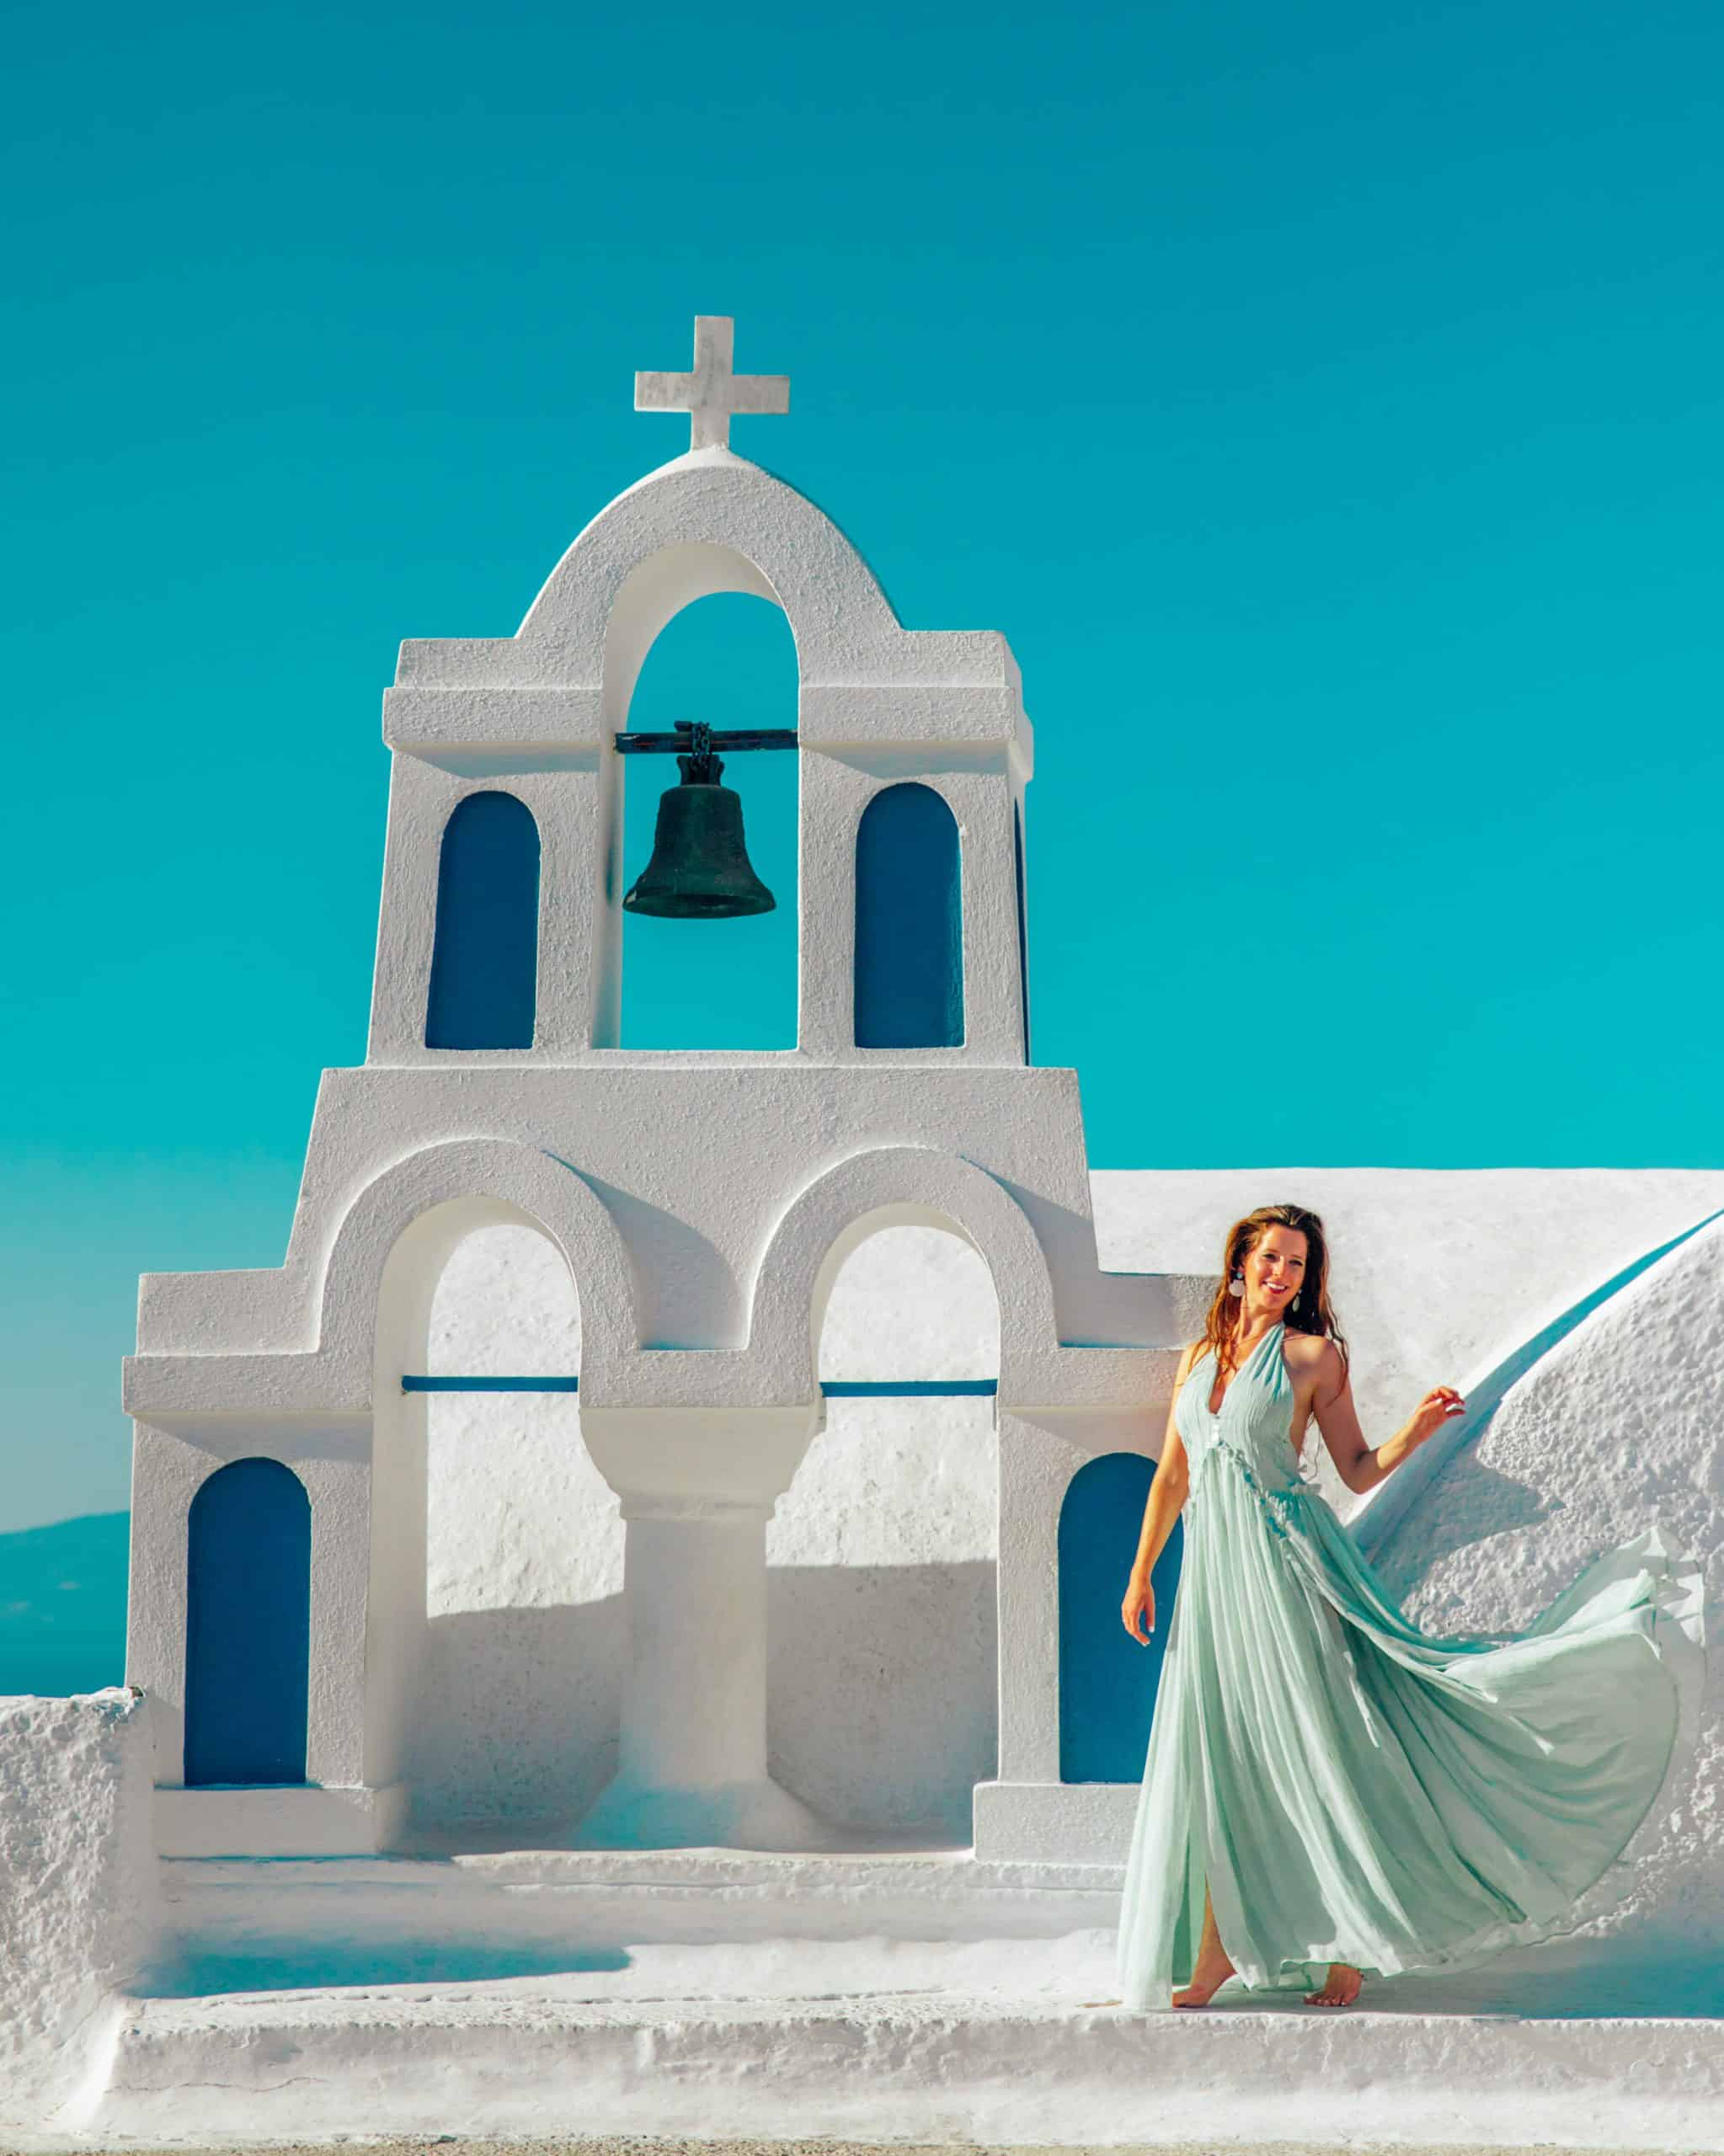 Bettina twirling at Blue Church with Bells in Oia Santorini